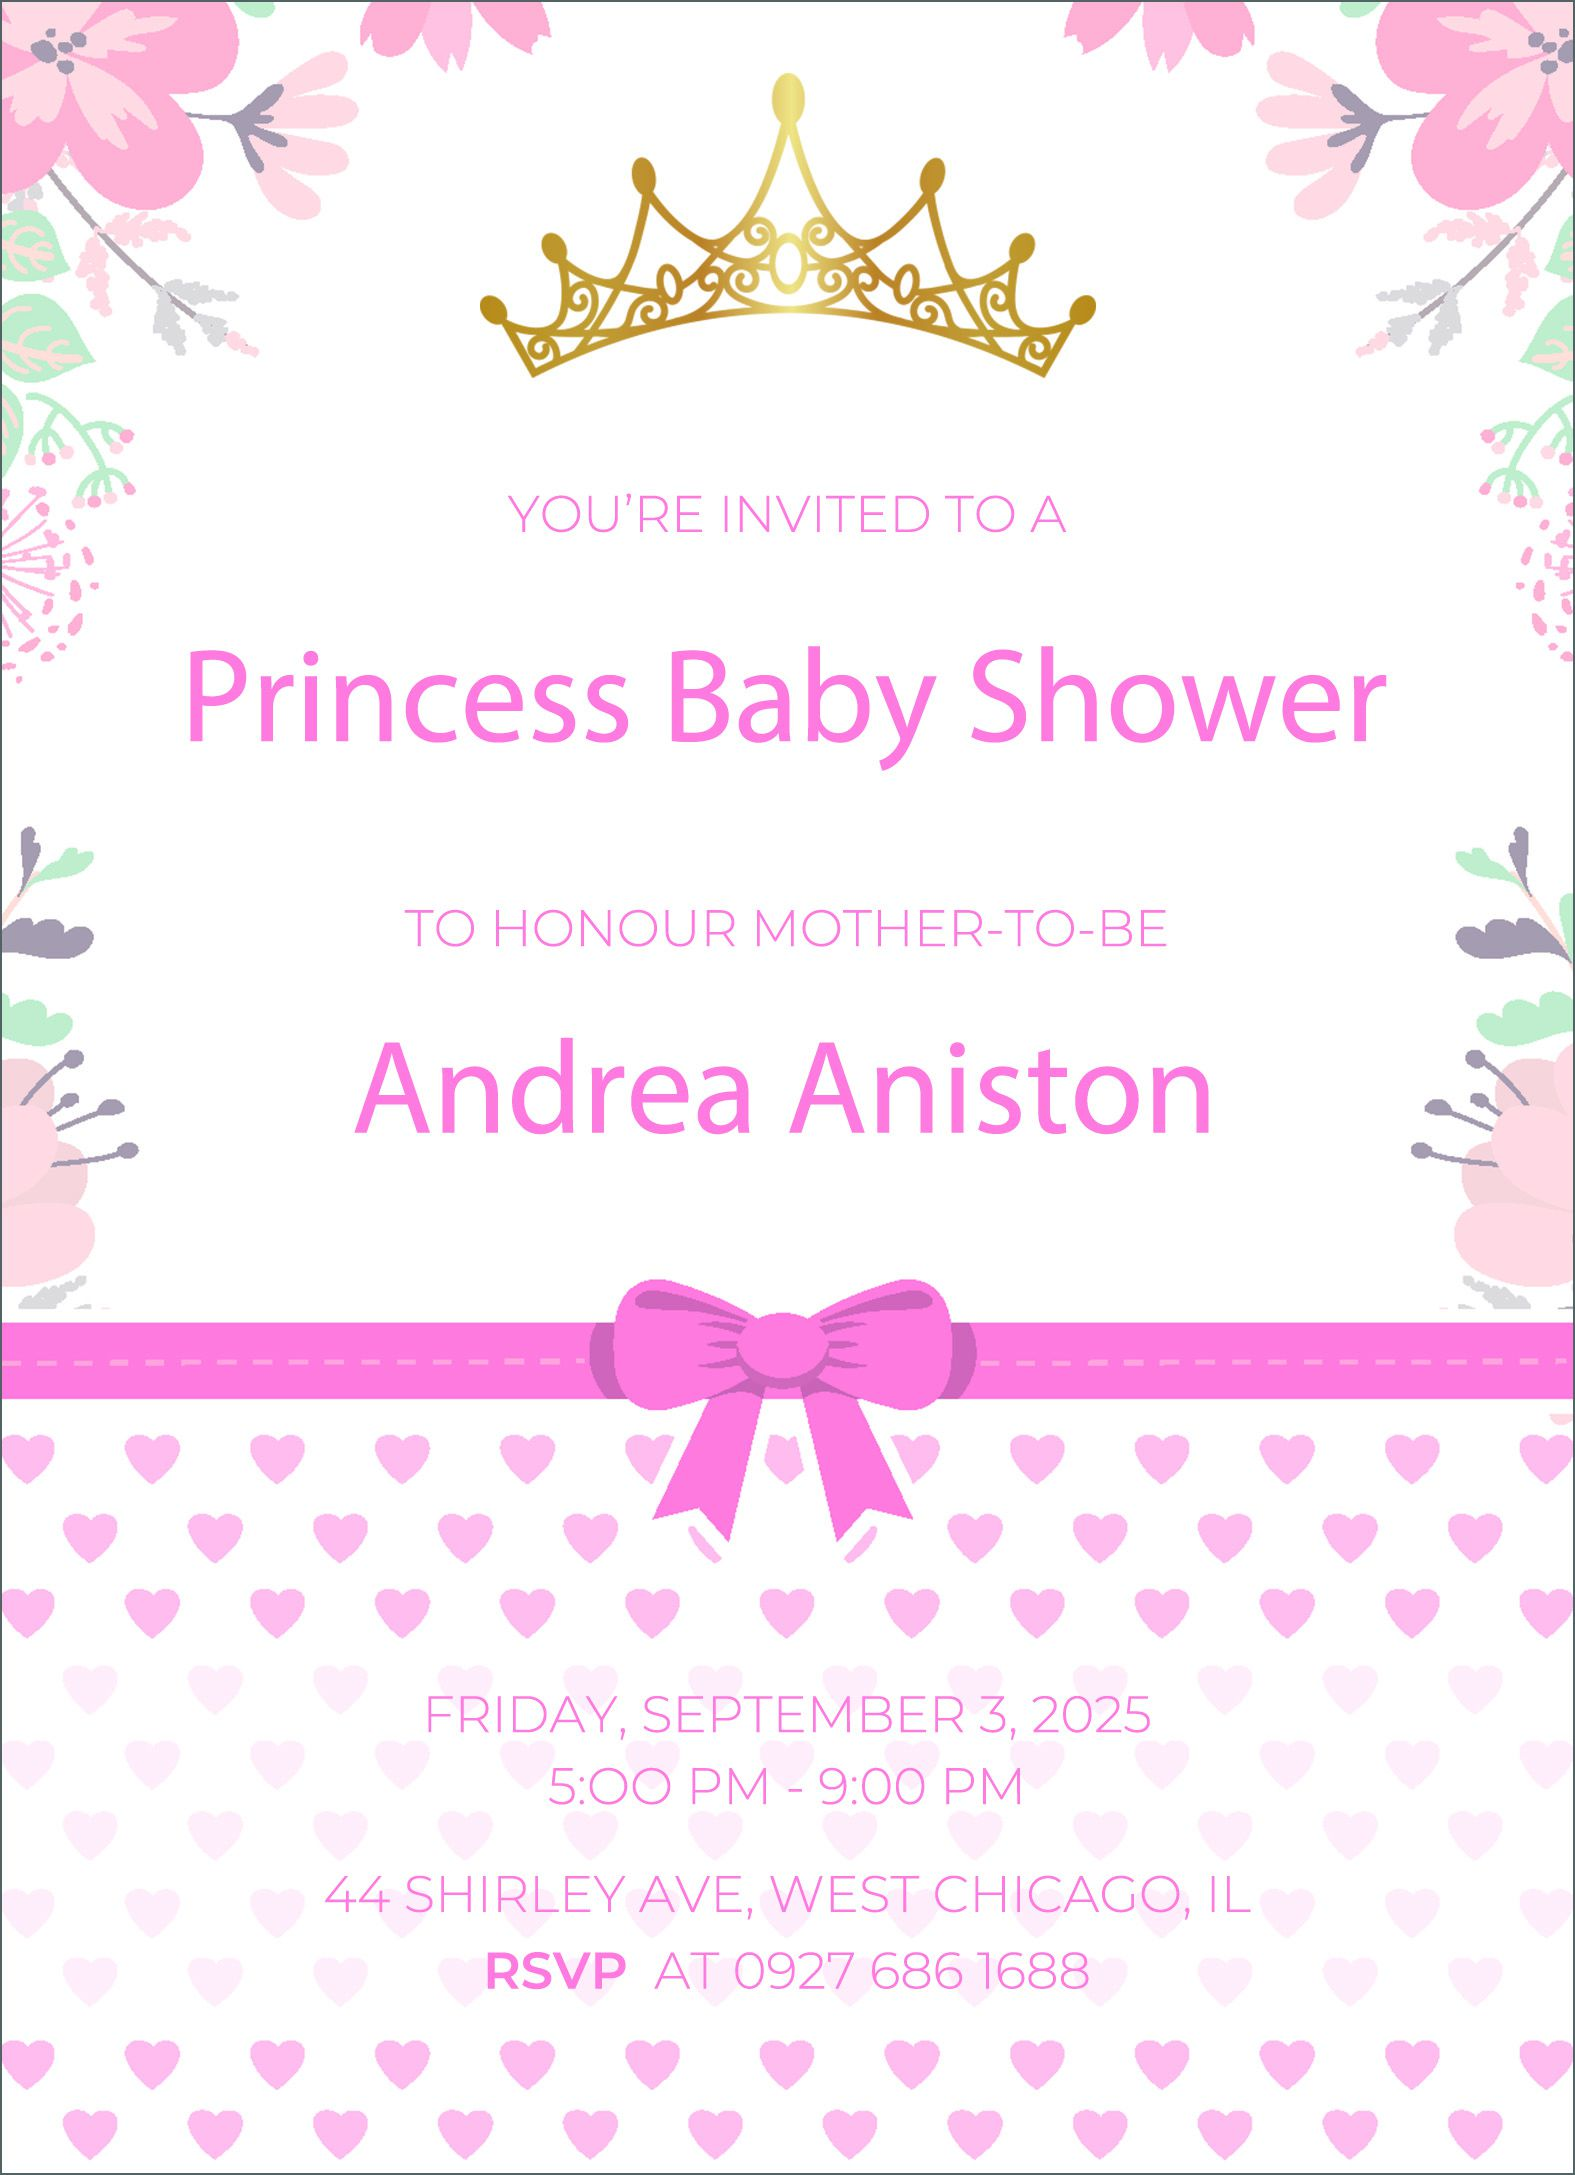 002 Impressive Free Baby Shower Invitation Template High Def  Printable Editable Microsoft Word To PrintFull